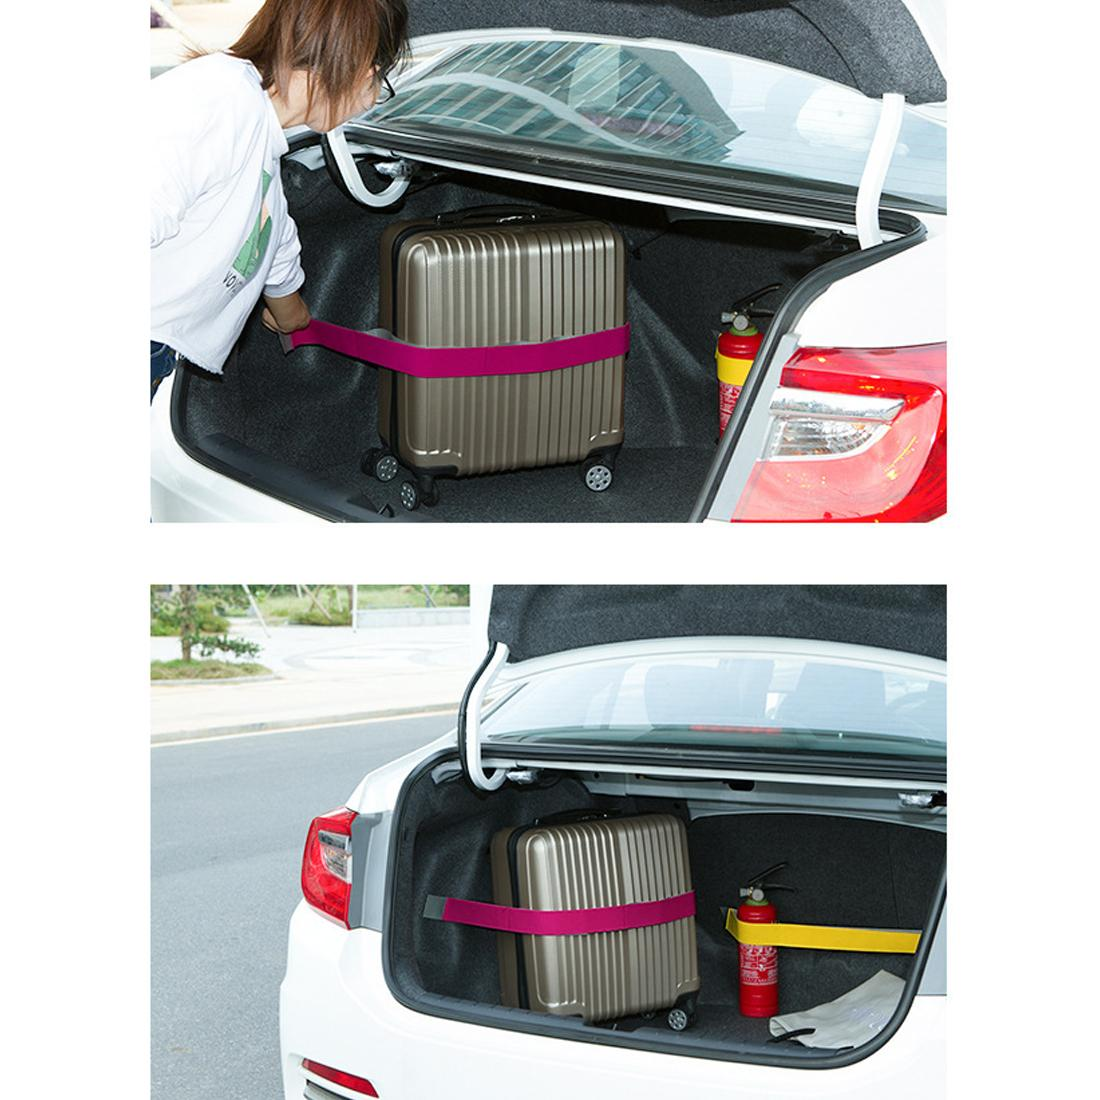 towing Tidying Promotion Car Trunk Organizer Elastic Car-styling Color Strap Fixed Sundry Stowing Tidying Auto Interior Accessories Dewtr...